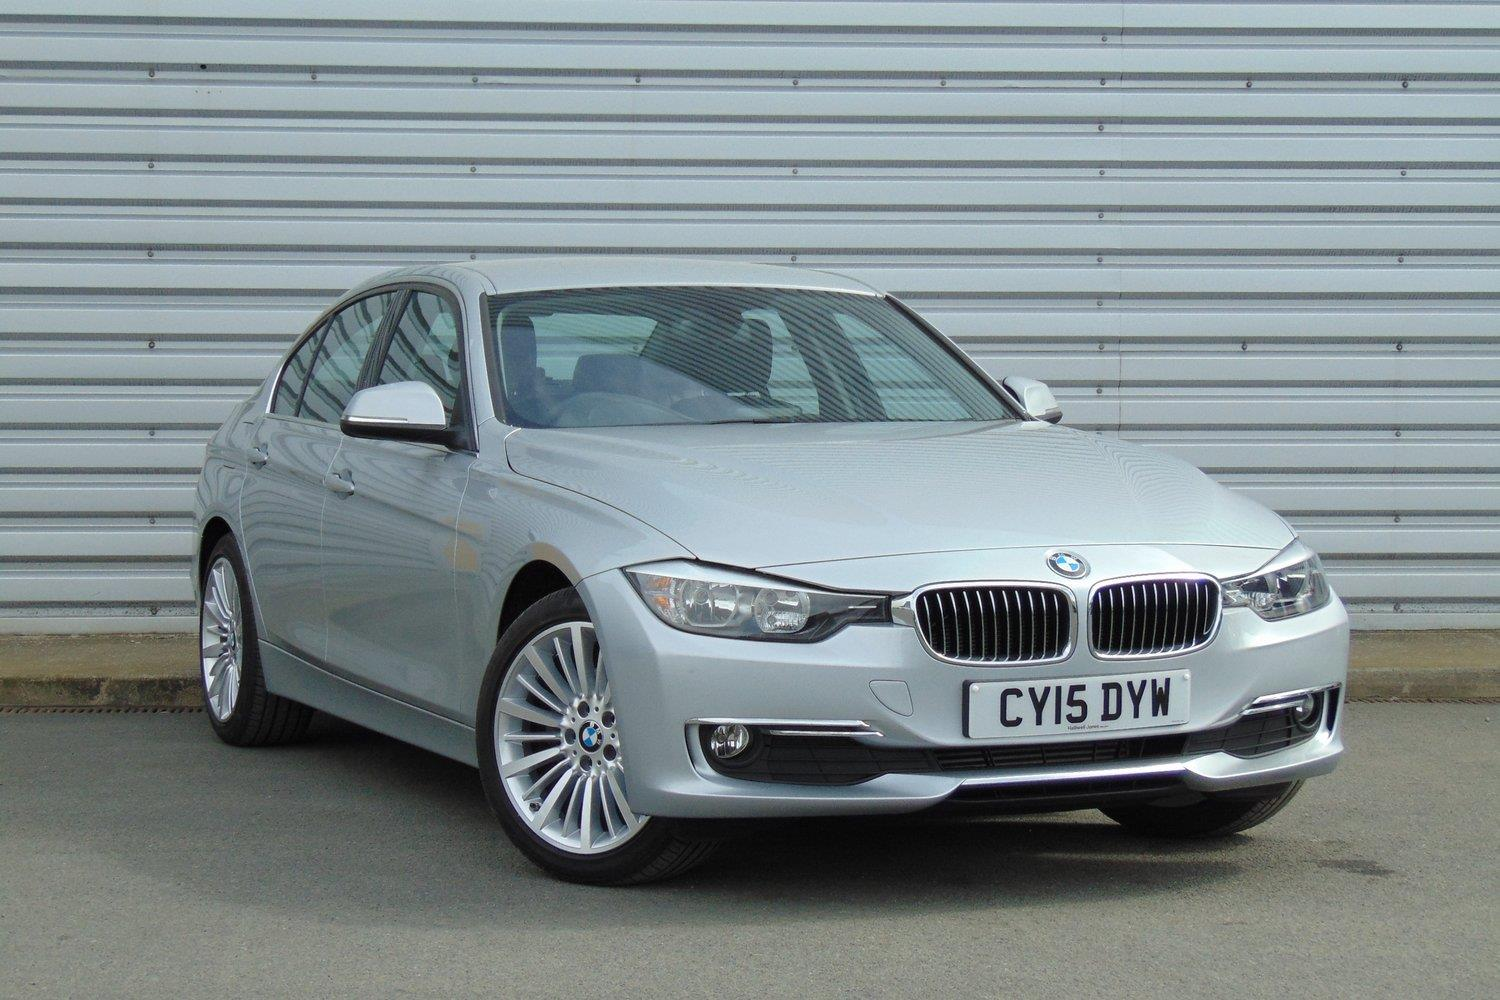 BMW 3 Series Saloon CY15DYW - Image 1